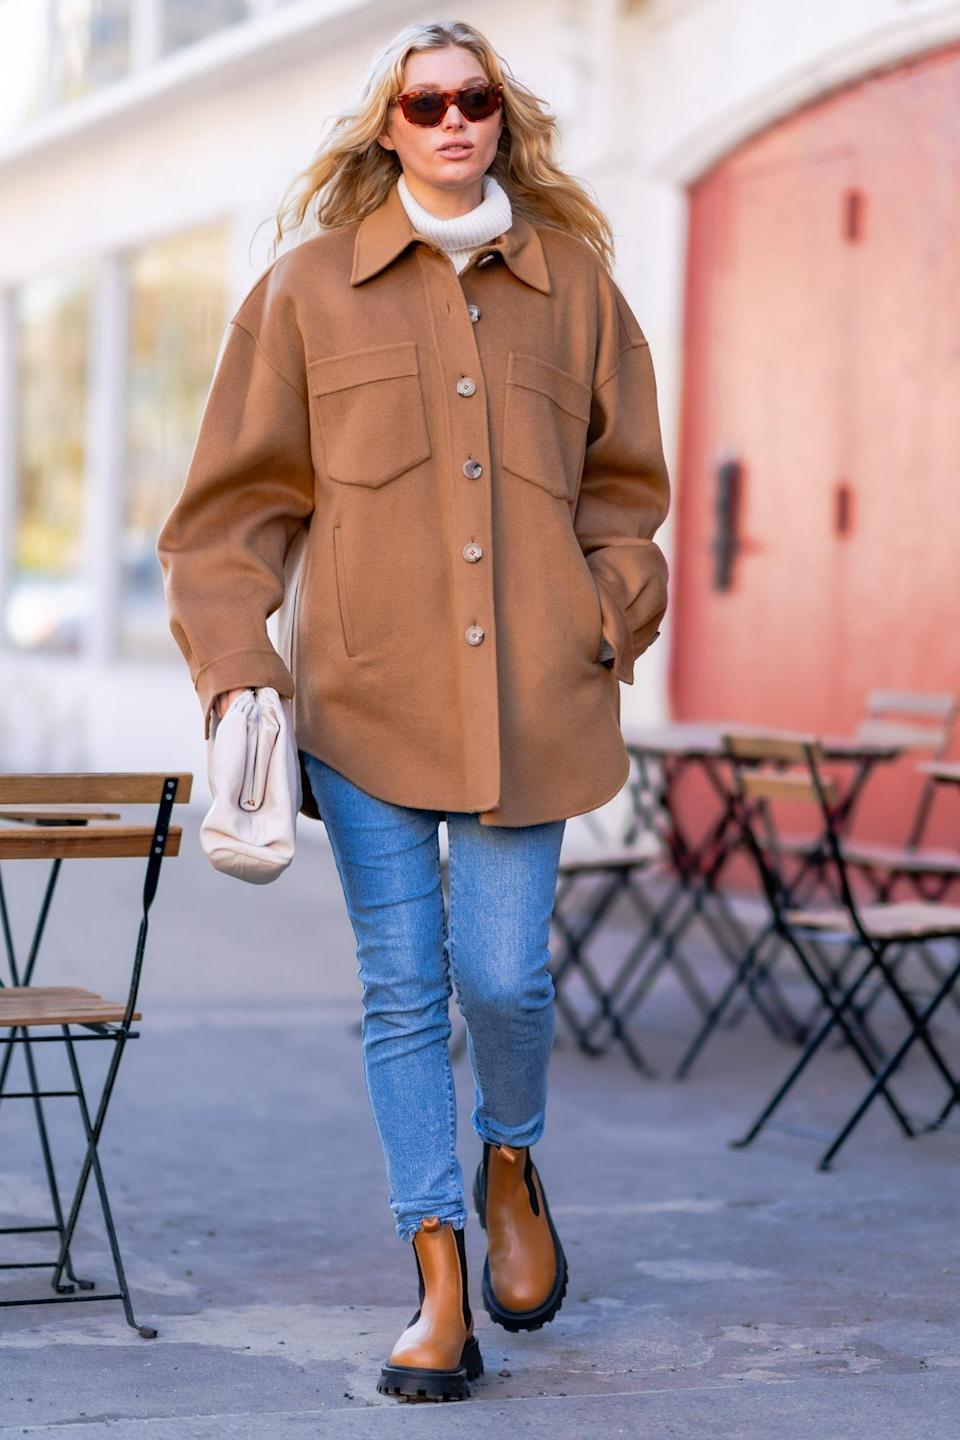 <p>Pregnant model Elsa Hosk was spotted looking chic and bundled up in New York.</p>